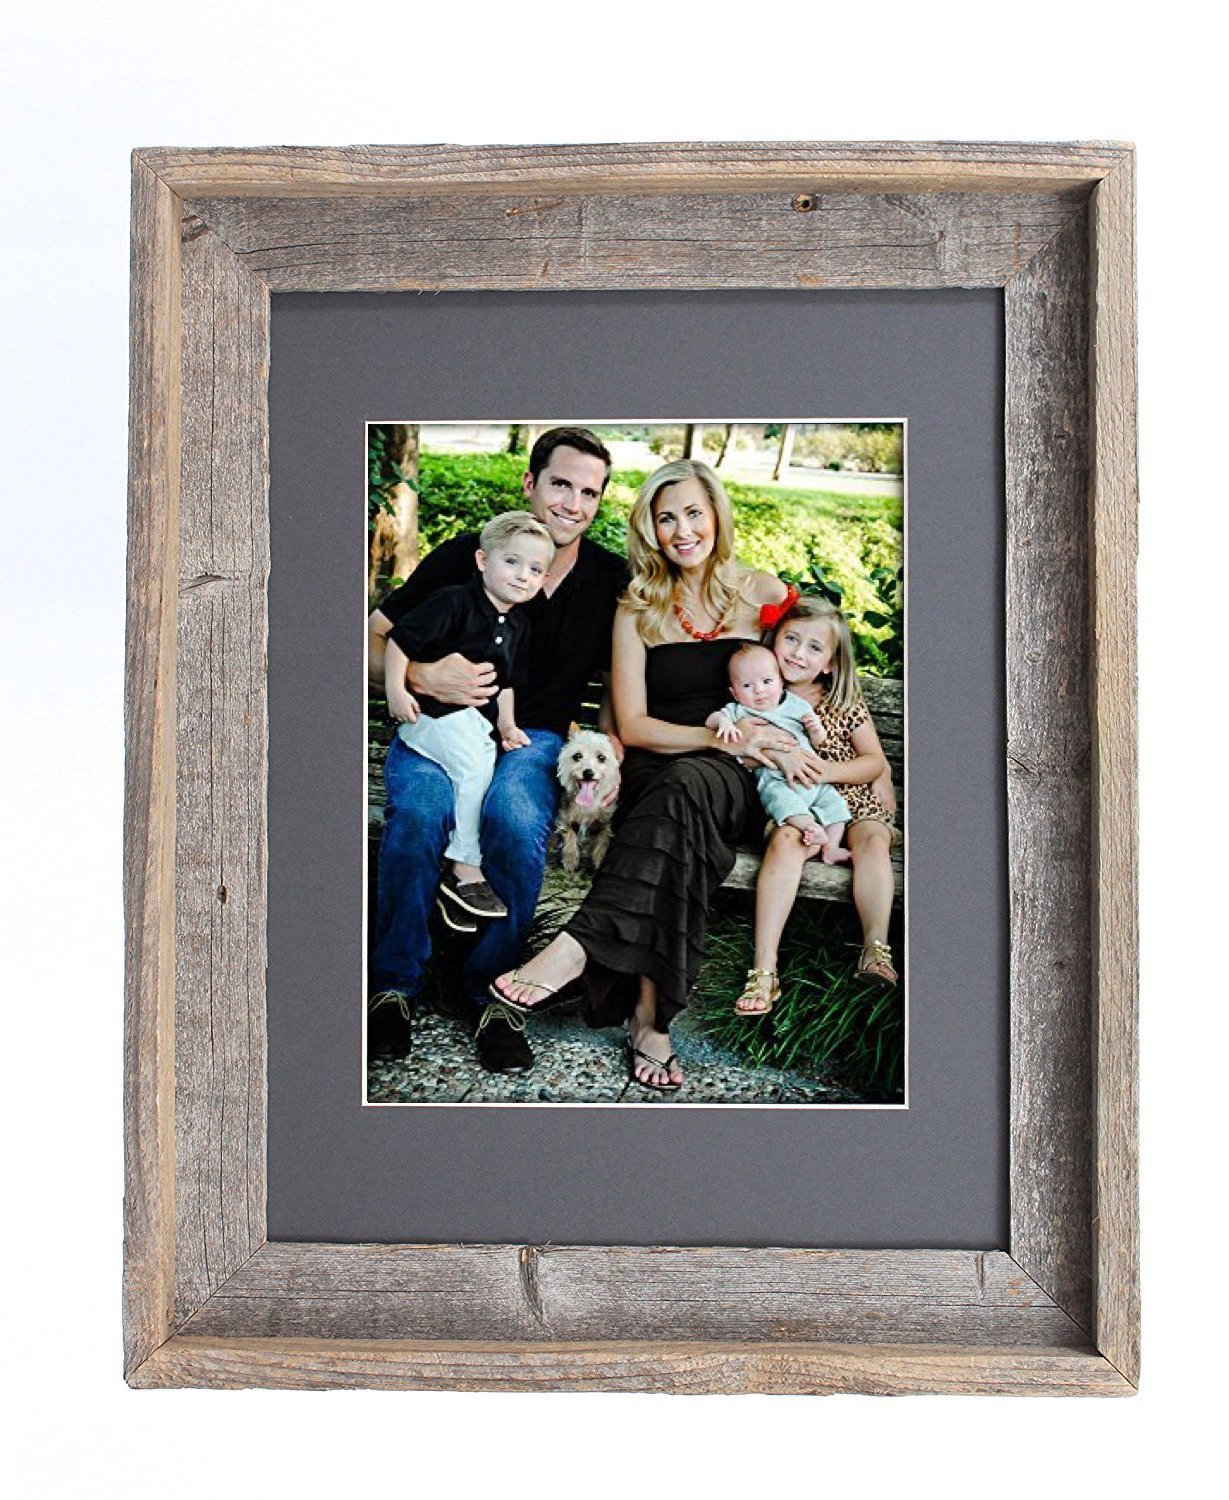 BarnwoodUSA 11x14 Inch Signature Picture Frame for 8x10 Inch Photos - 100% Reclaimed Wood, Cinder Mat